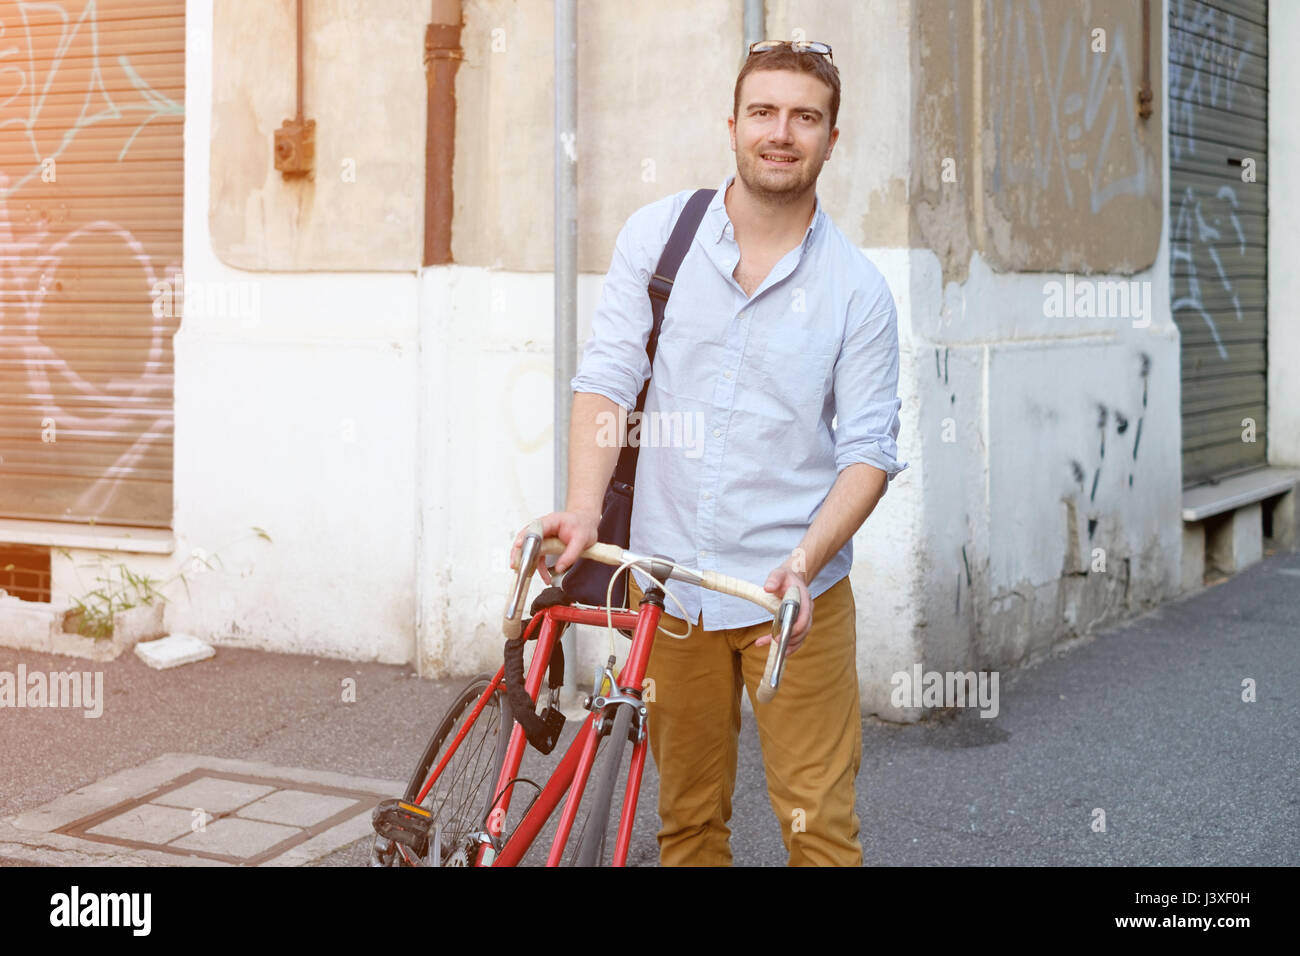 Fashionable man holding his bike in the city street - Stock Image